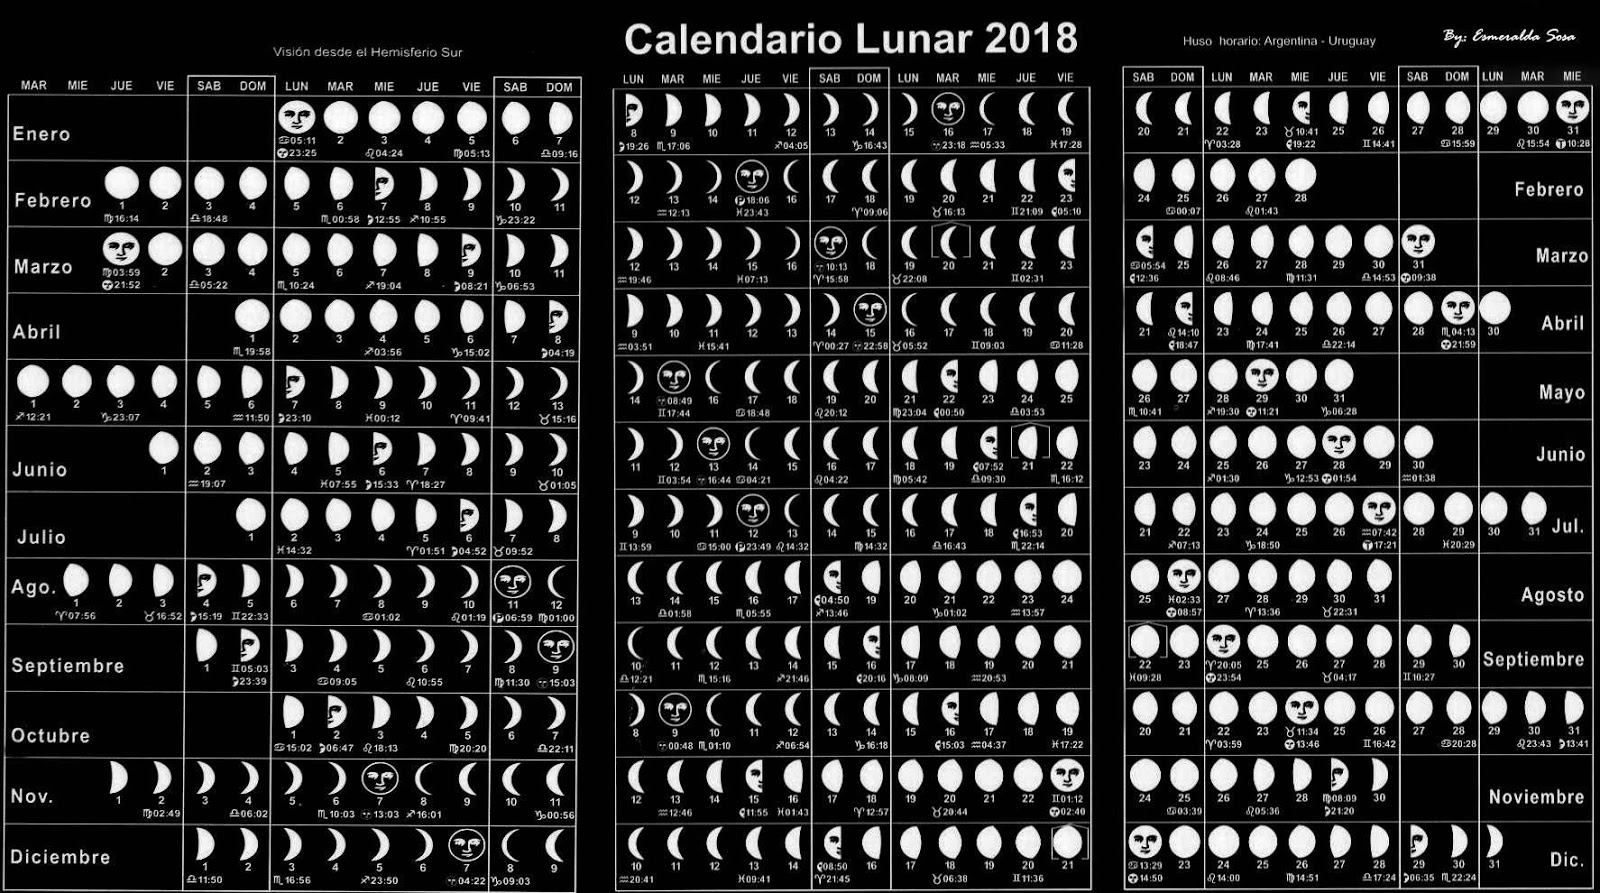 2017 December Full Moon >> esplaobs: CALENDARIO LUNAR 2018